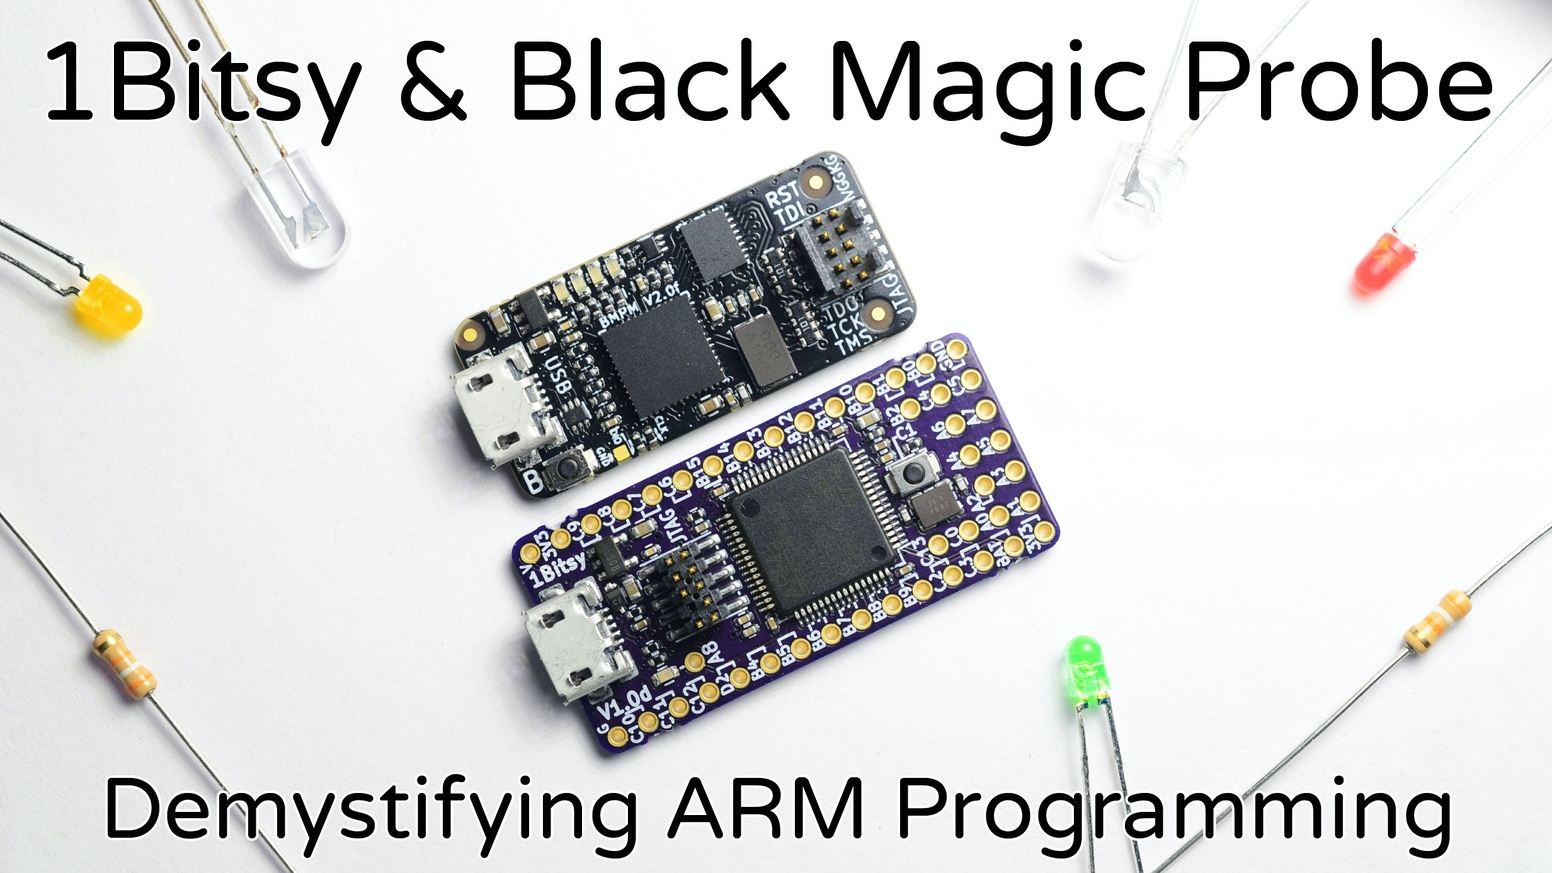 1Bitsy is a user friendly open-source ARM Cortex-M4F Development Platform and Black Magic Probe is a Plug & Play JTAG/SWD ARM debugger.